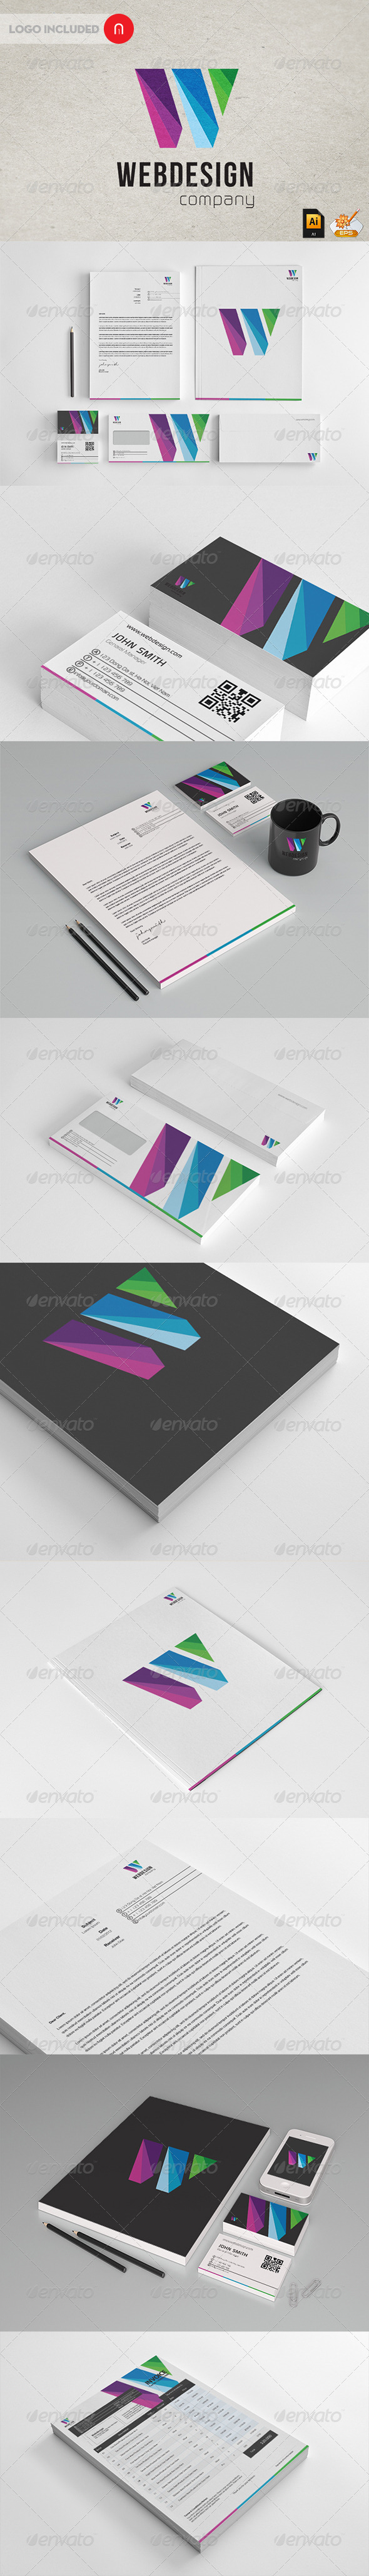 Wen Design - Modern Stationary + Invoice - Stationery Print Templates